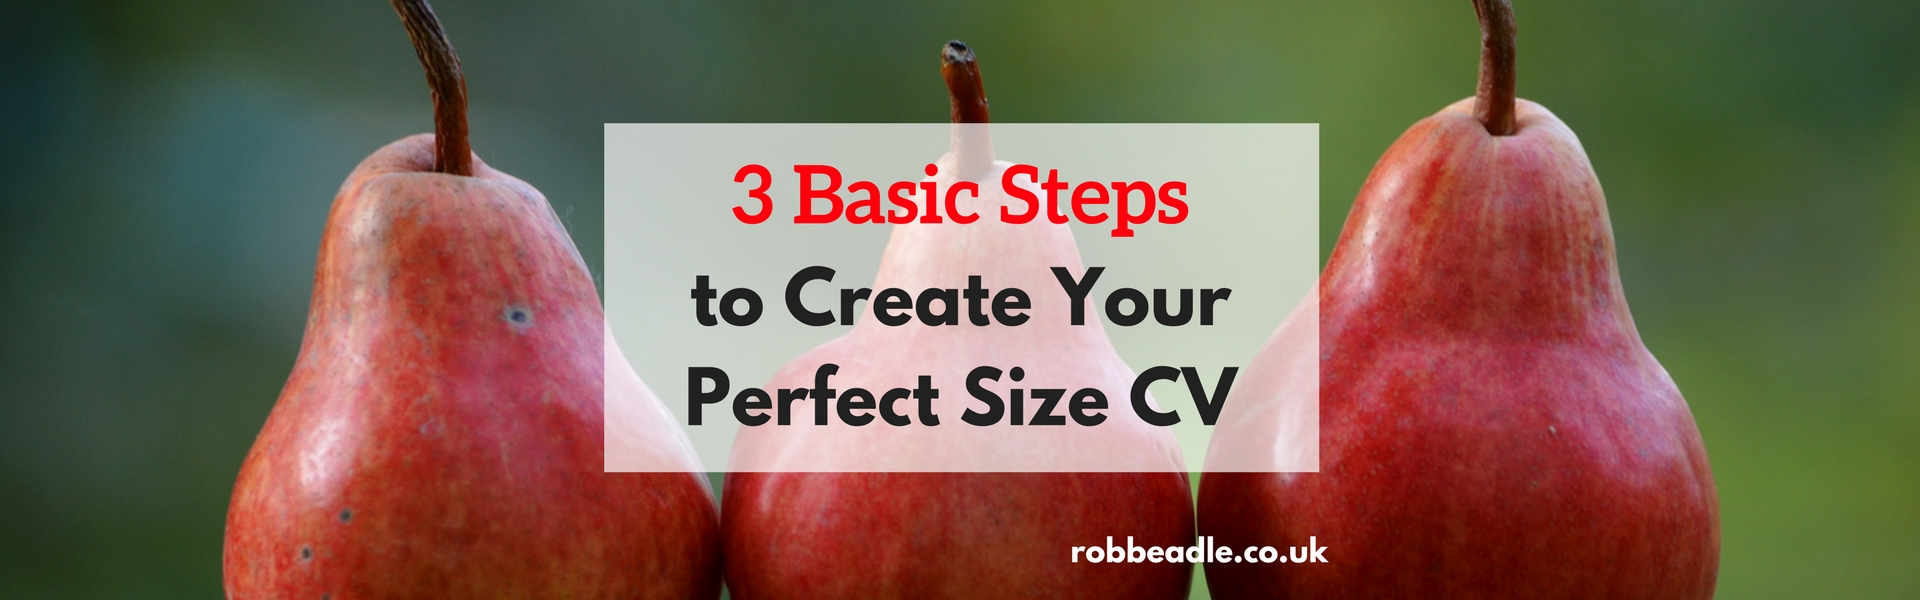 3 red pears - 3 basic steps to create your perfect size cv